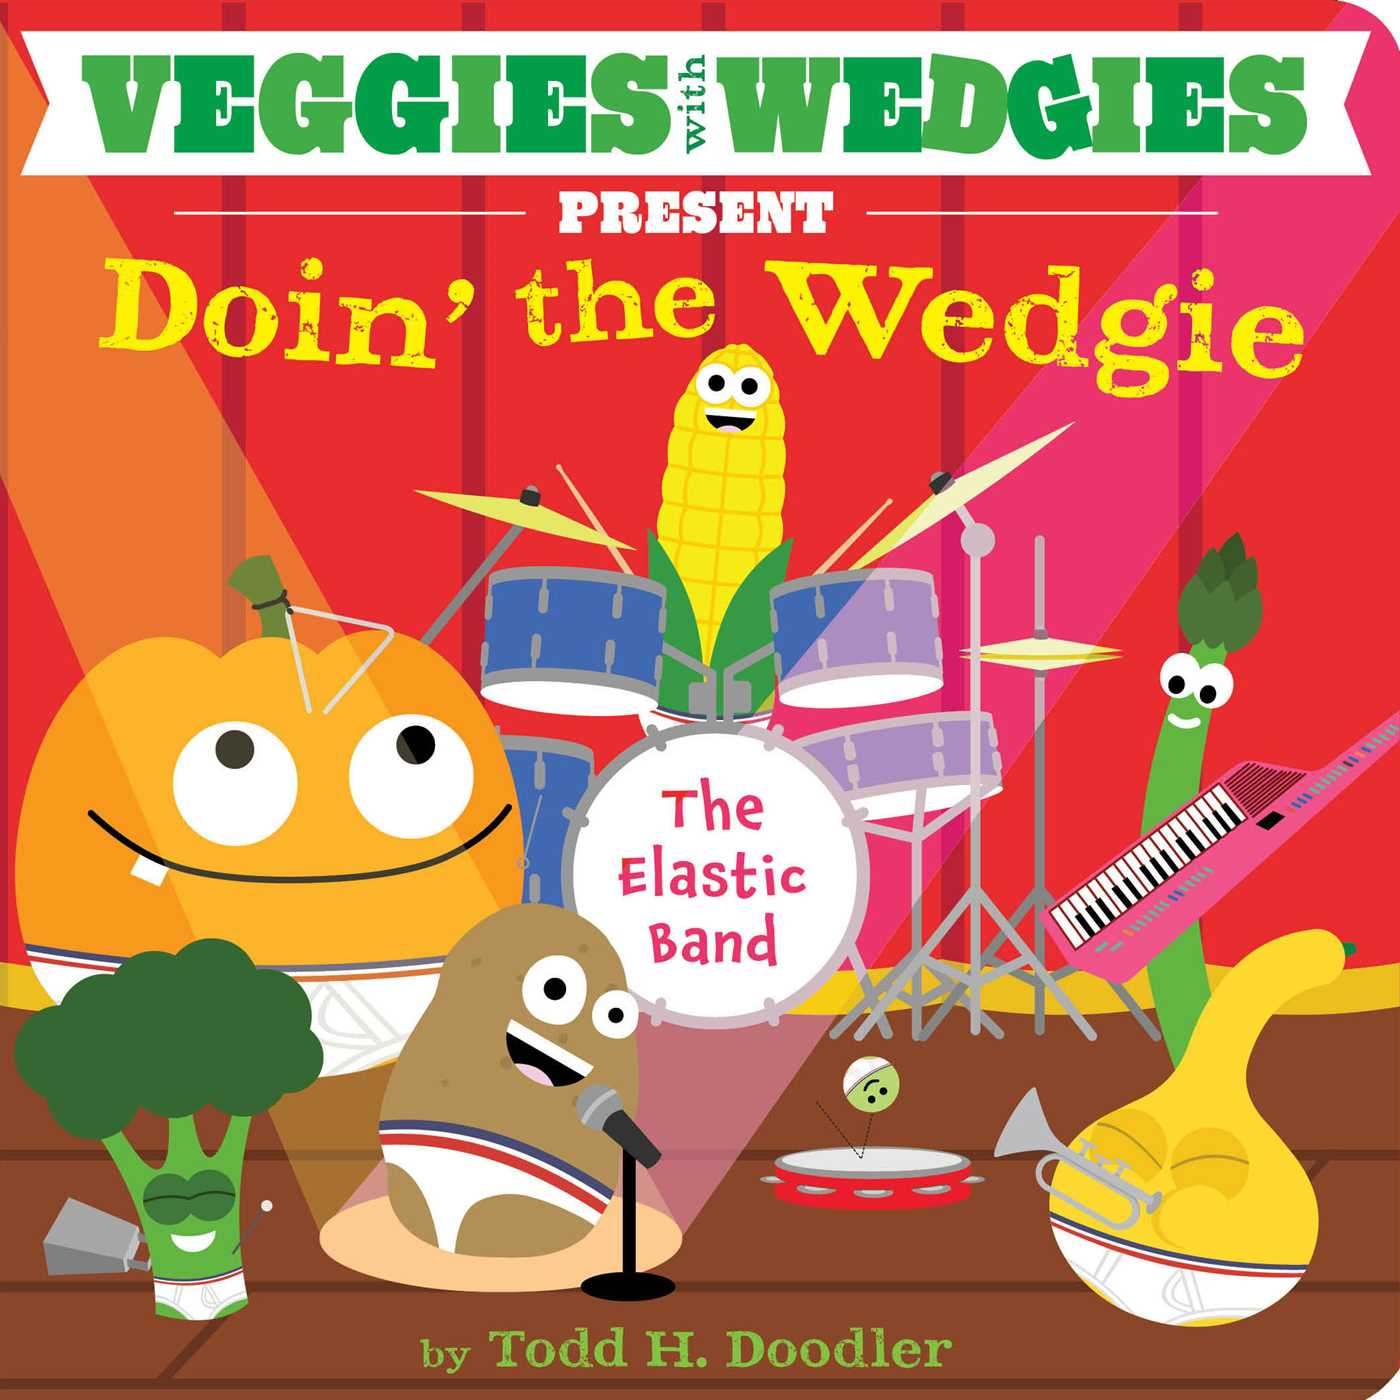 Veggies with Wedgies Present Doin' the Wedgie | Book by Todd